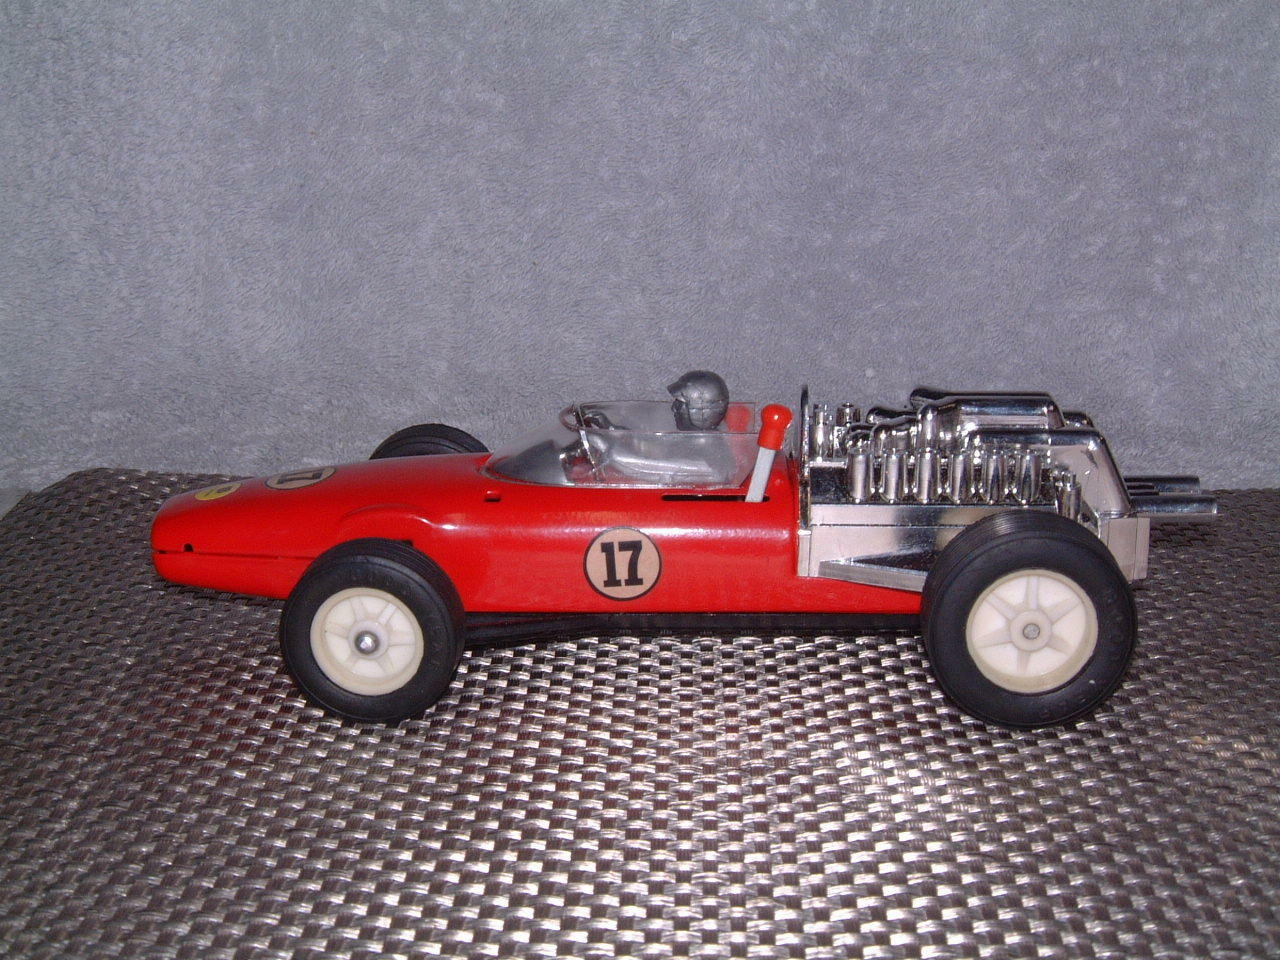 BANDAI TIN FERRARI RACER WITH DUAL DUAL DUAL SPEEDS & DIRECTIONS & BOX  WORKS PERFECTLY  7ad07b